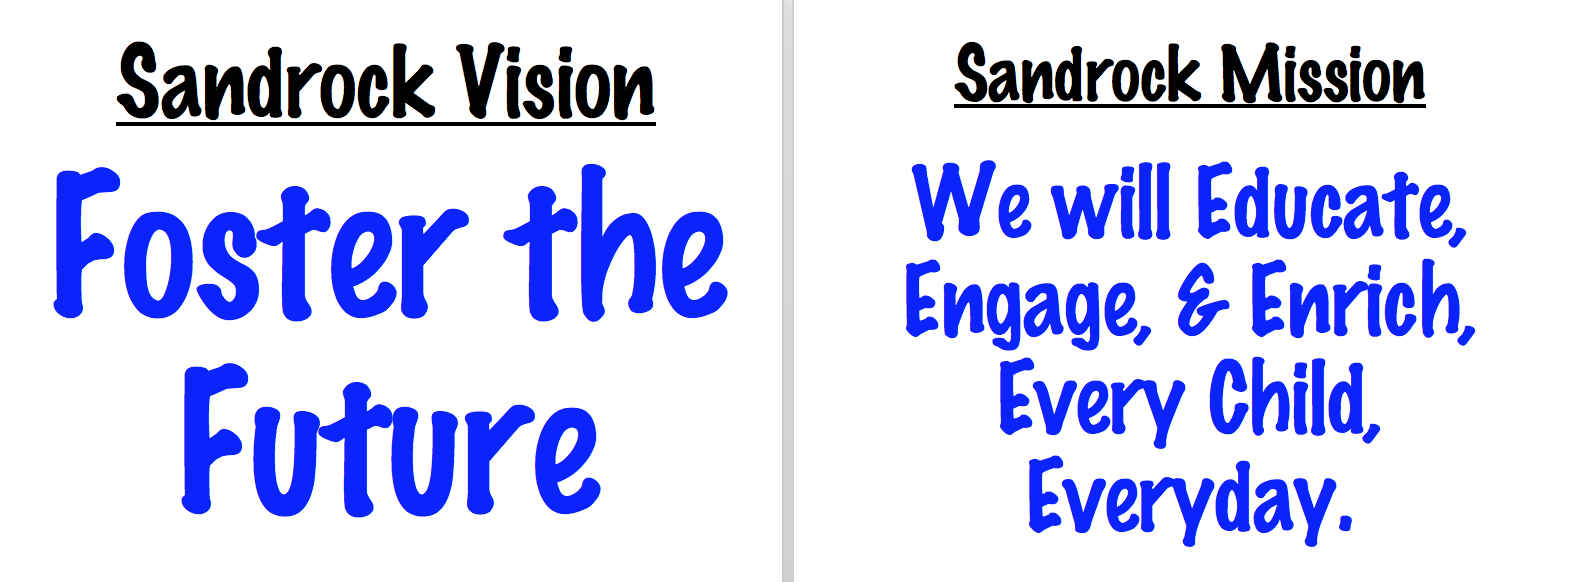 Sandrock Elementary Vision & Mission Statements